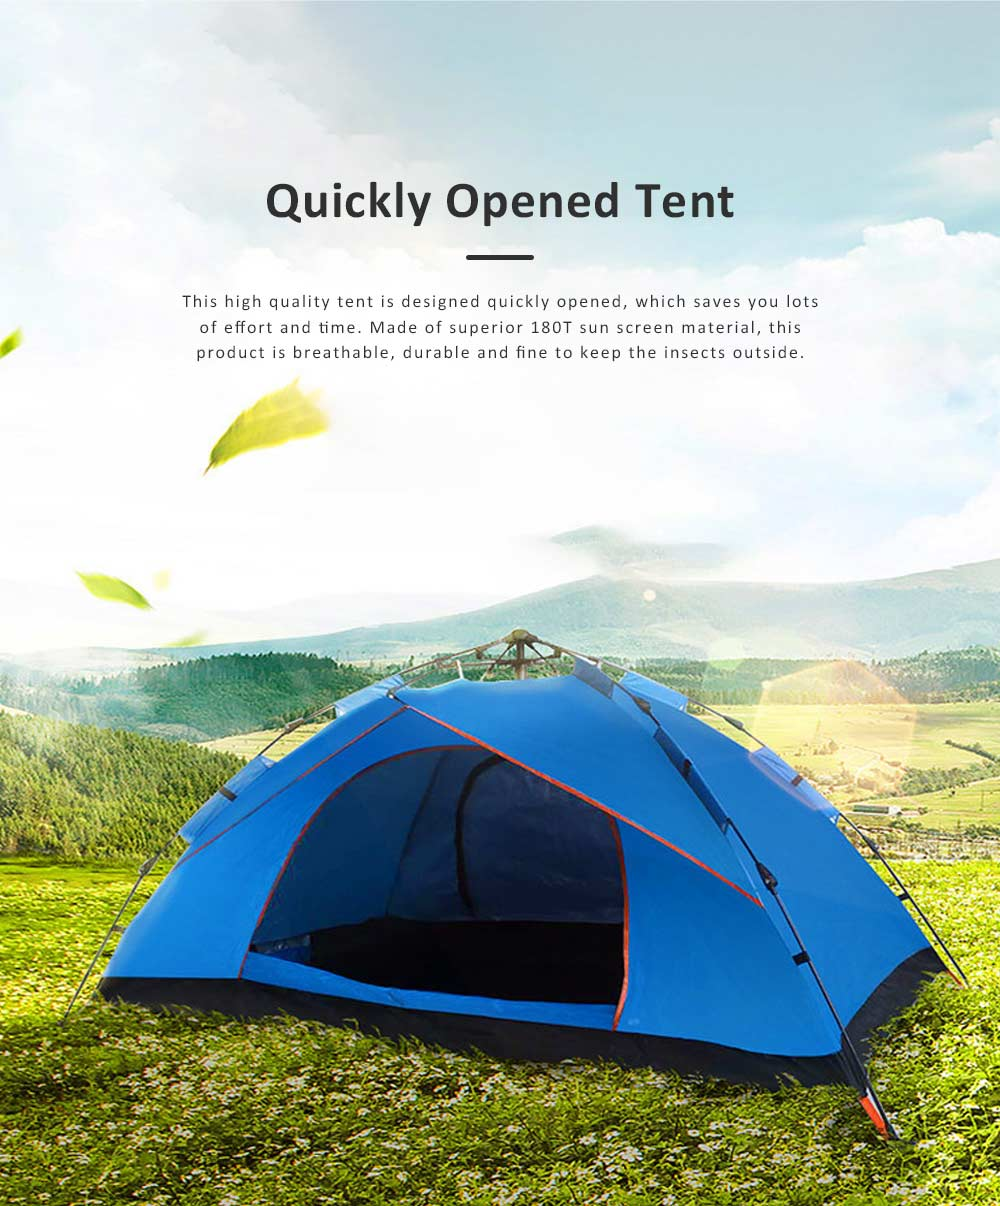 Quickly Pop Up Opening Automatically Tent for Two to Four People, High Quality 180T Sunscreen Proof Material Camping Tent for Beach Traveling Hiking 0